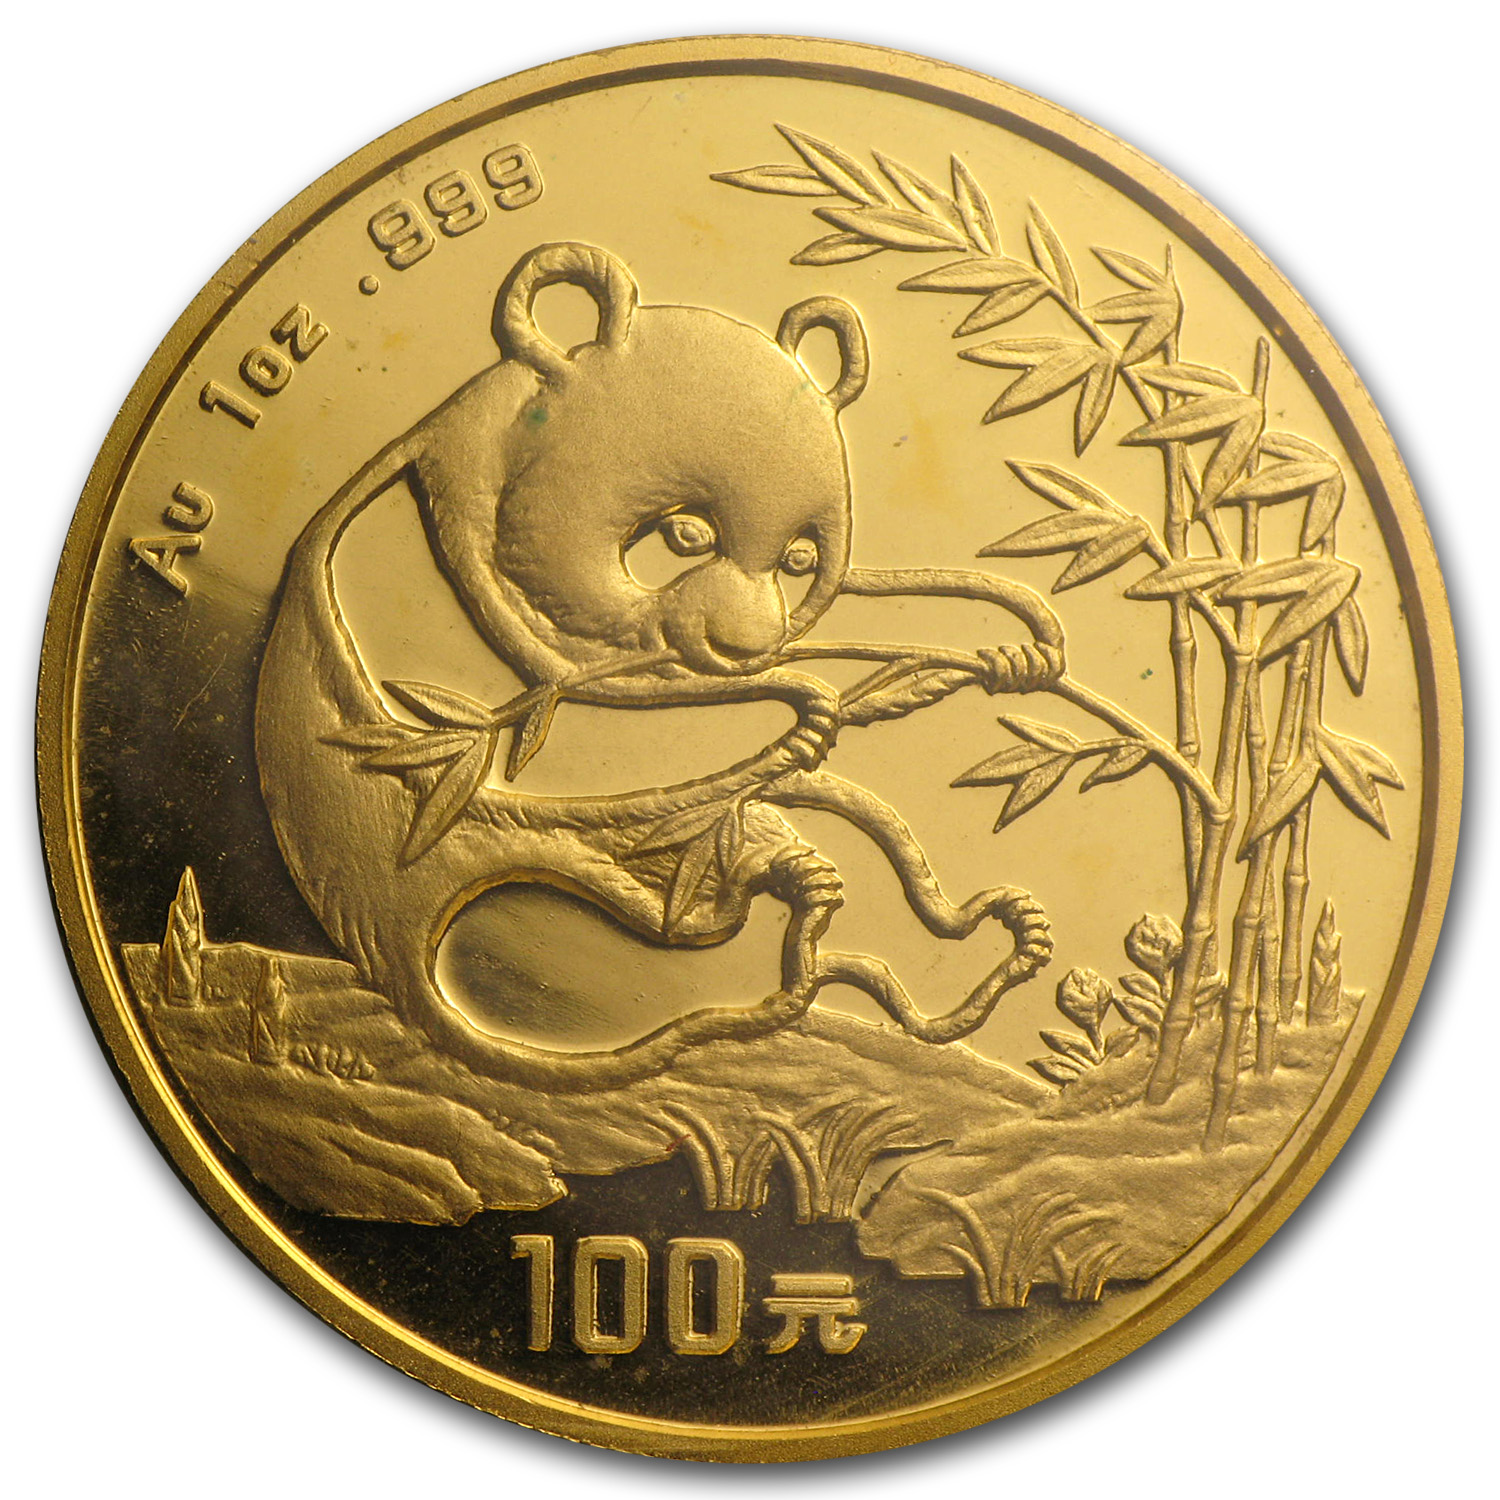 1994 1 oz Gold Chinese Panda Small Date BU (Sealed)